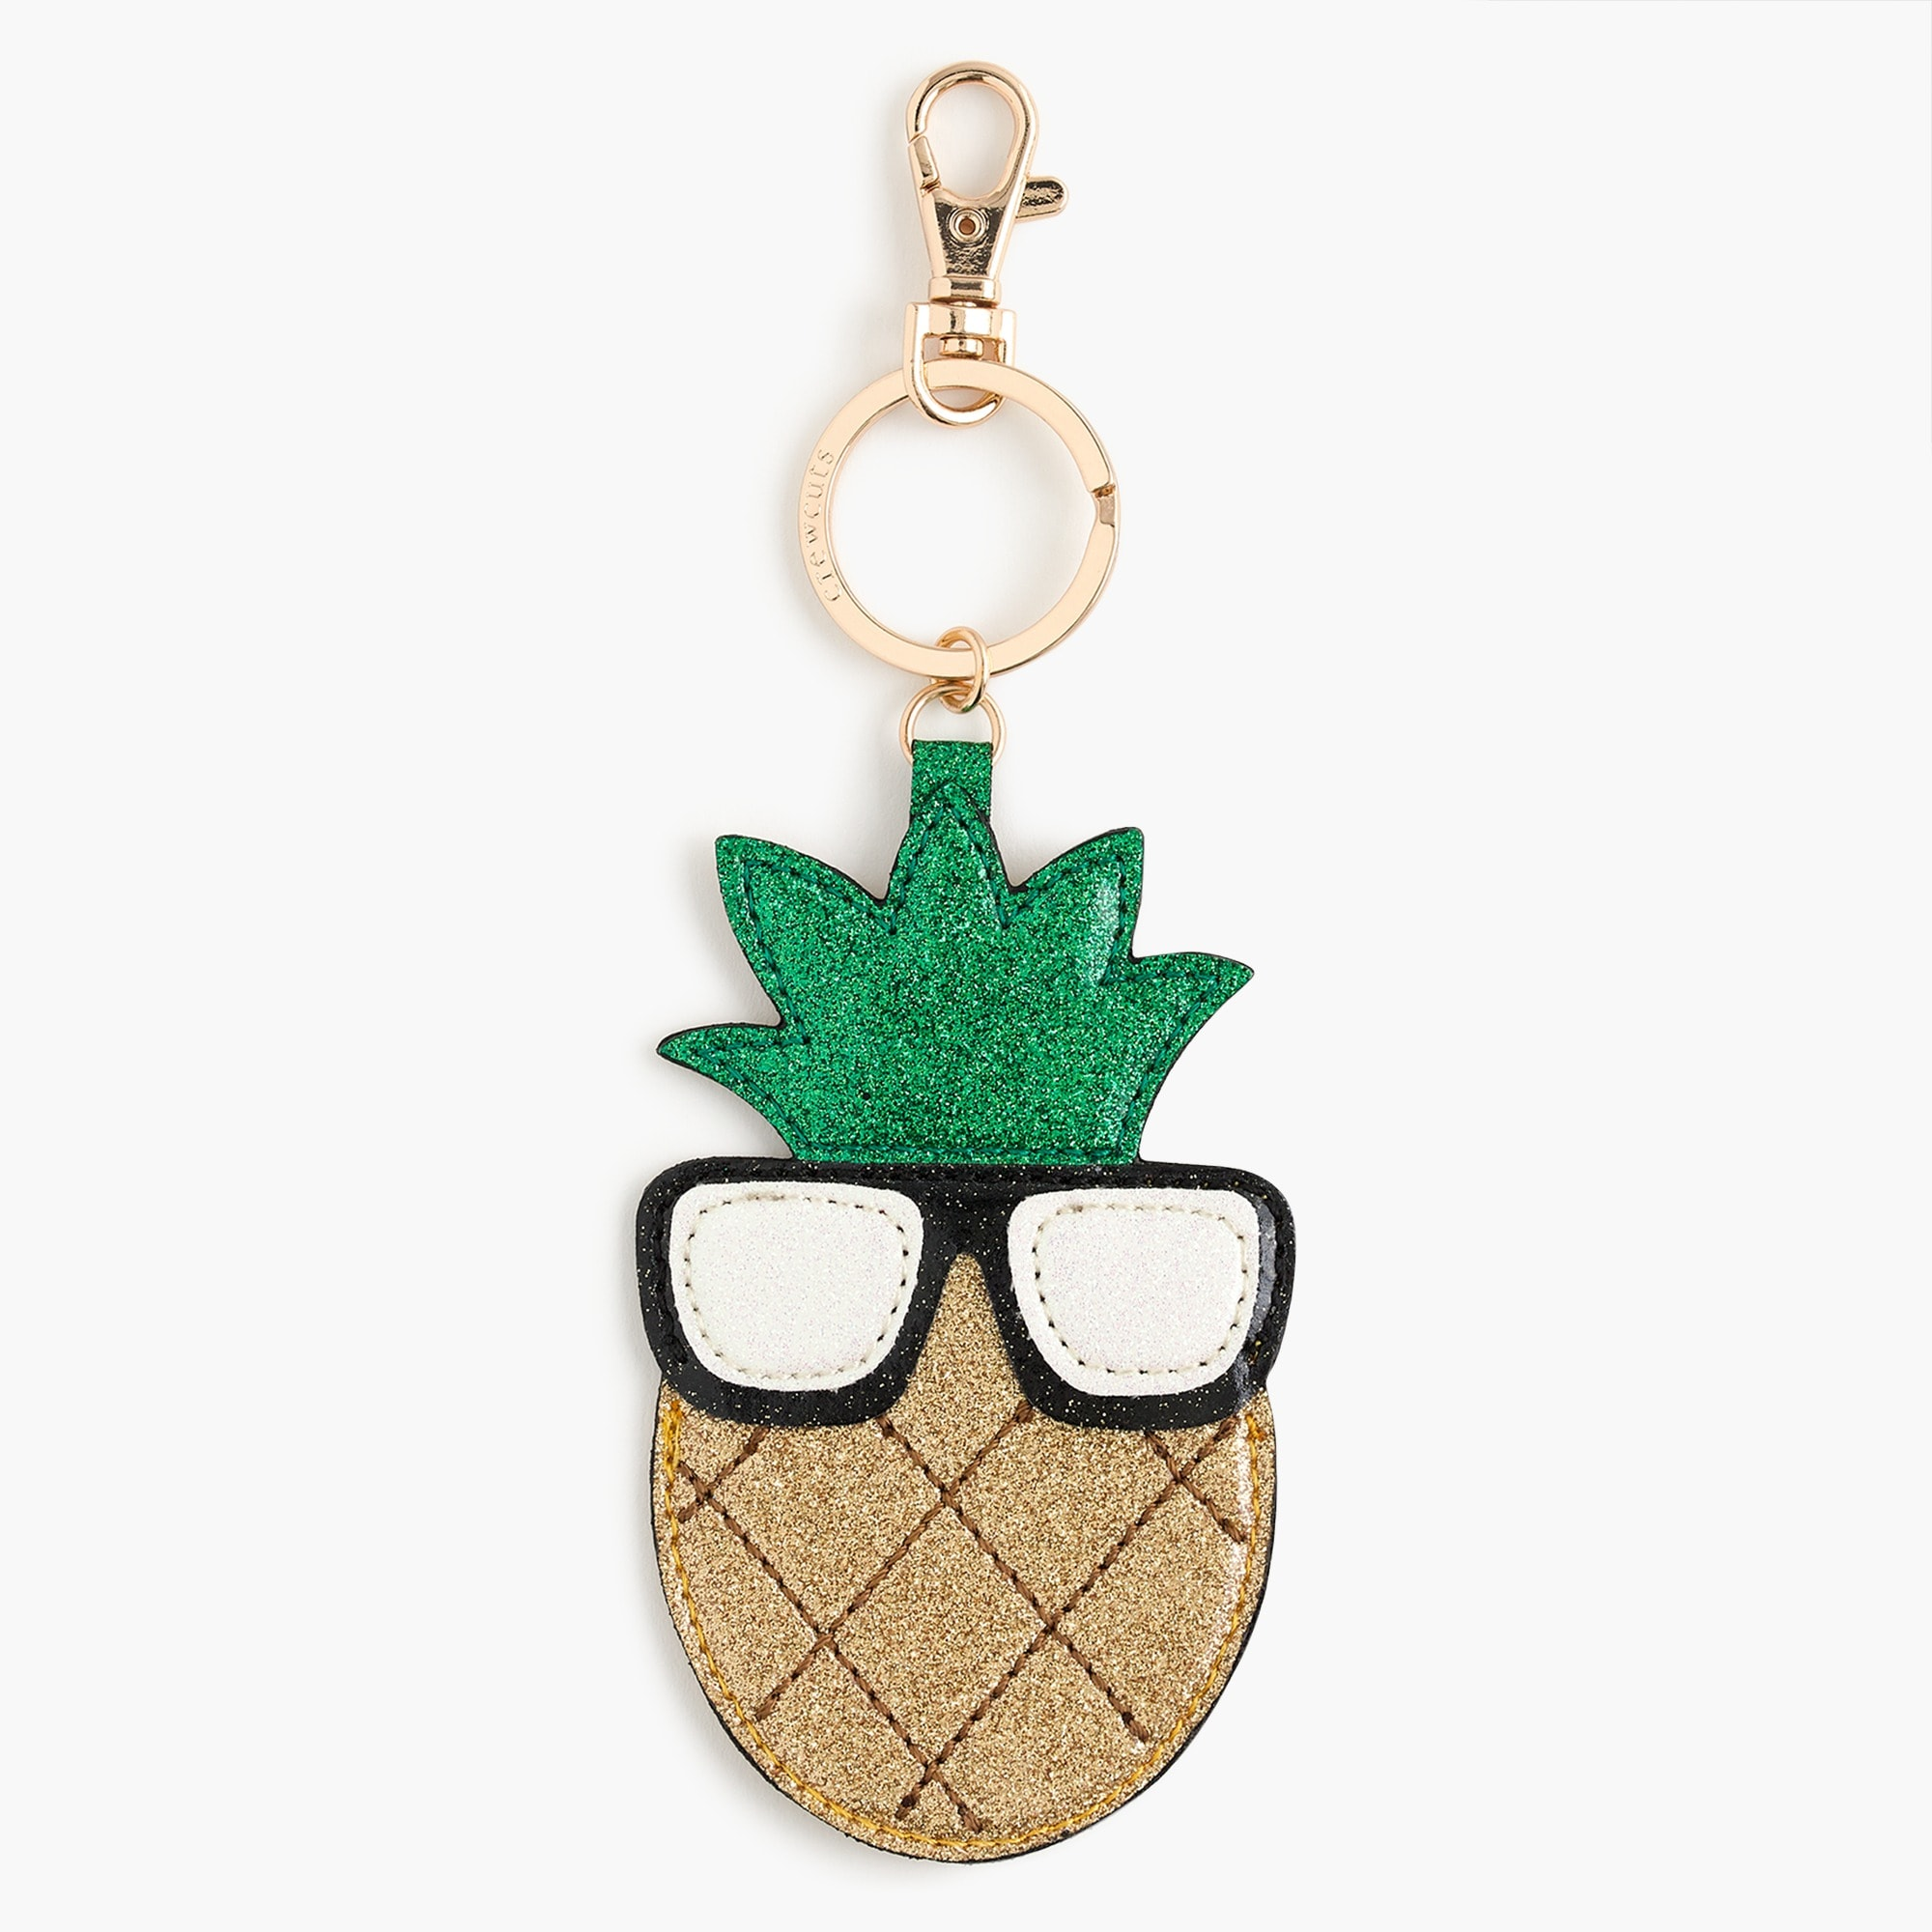 Image 1 for Girls' pineapple emoji keychain